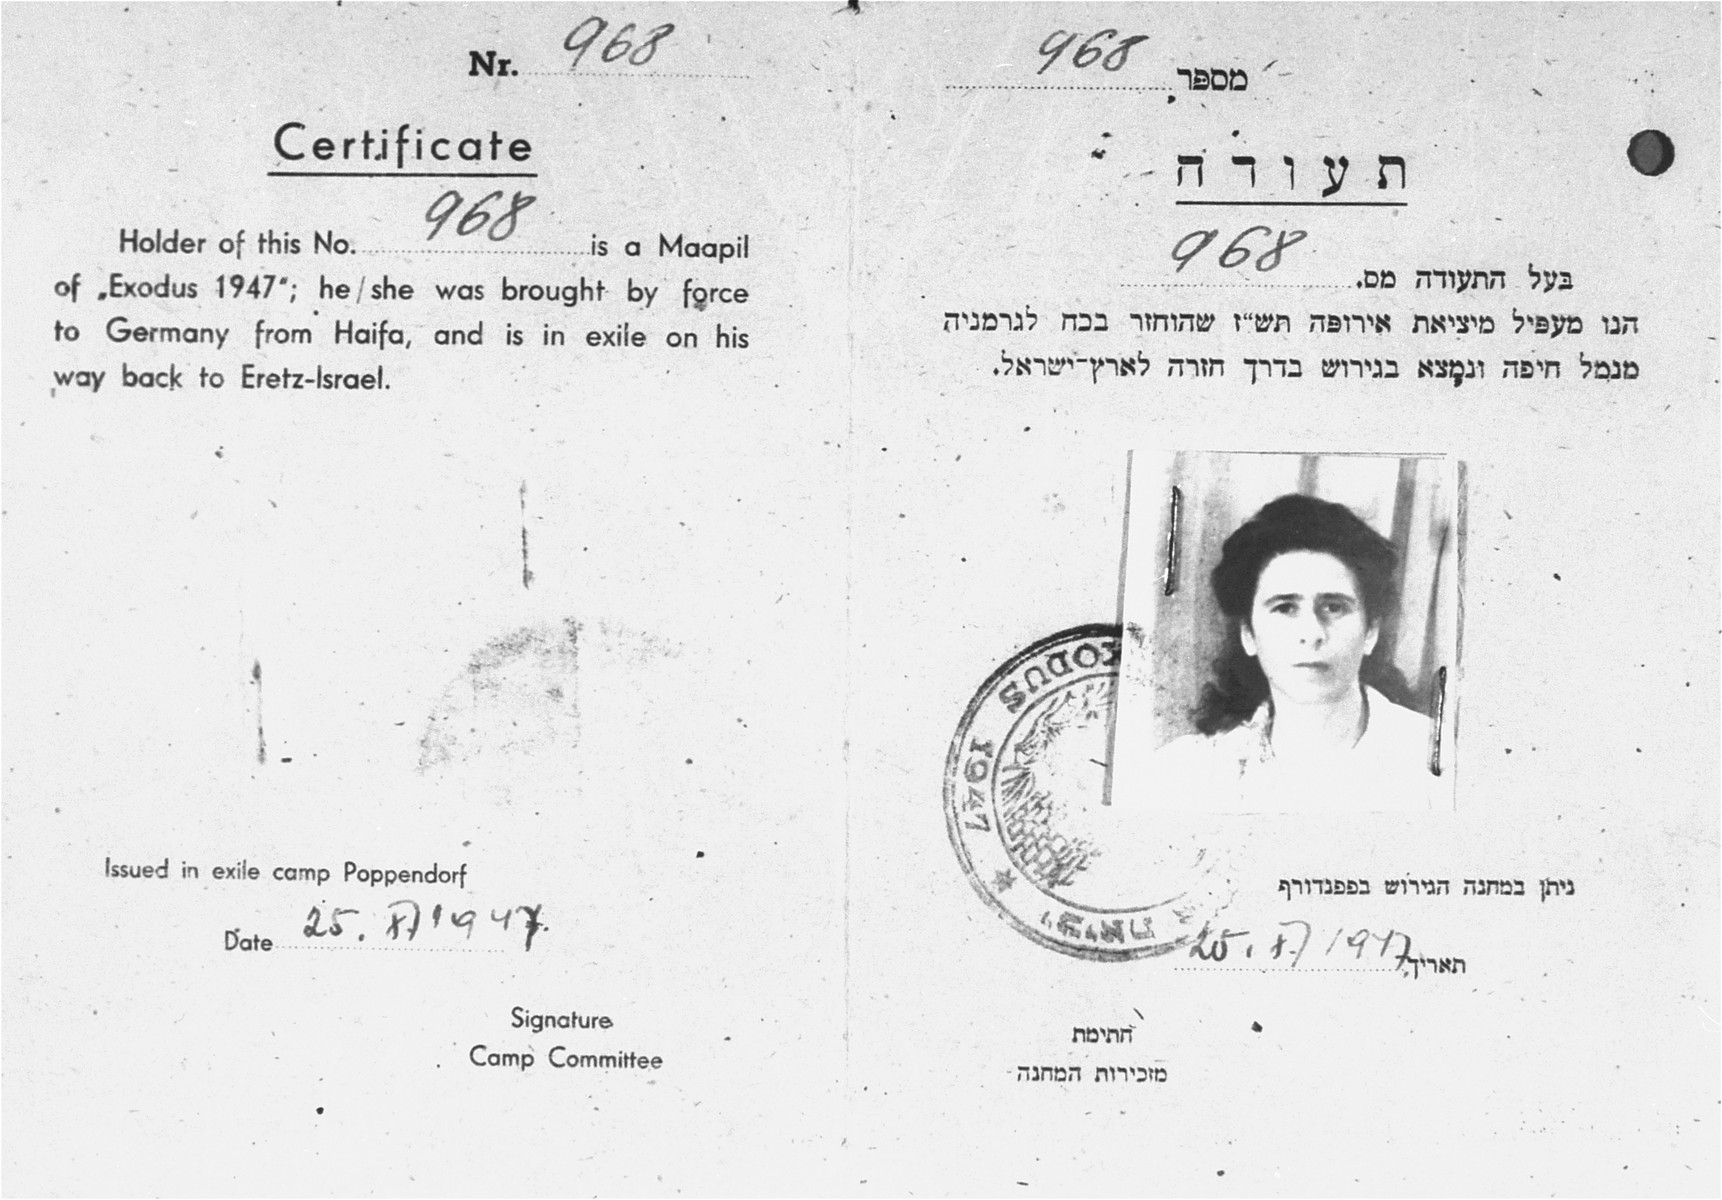 """DP identity card, issued by the Jewish administration of the Poppendorf displaced persons camp, certifying that Rosa Rudashevsky was an illegal immigrant aboard the Exodus 1947, who was brought back to Germany against her will, and who """"is in exile on [her] way back to Eretz-Israel""""."""